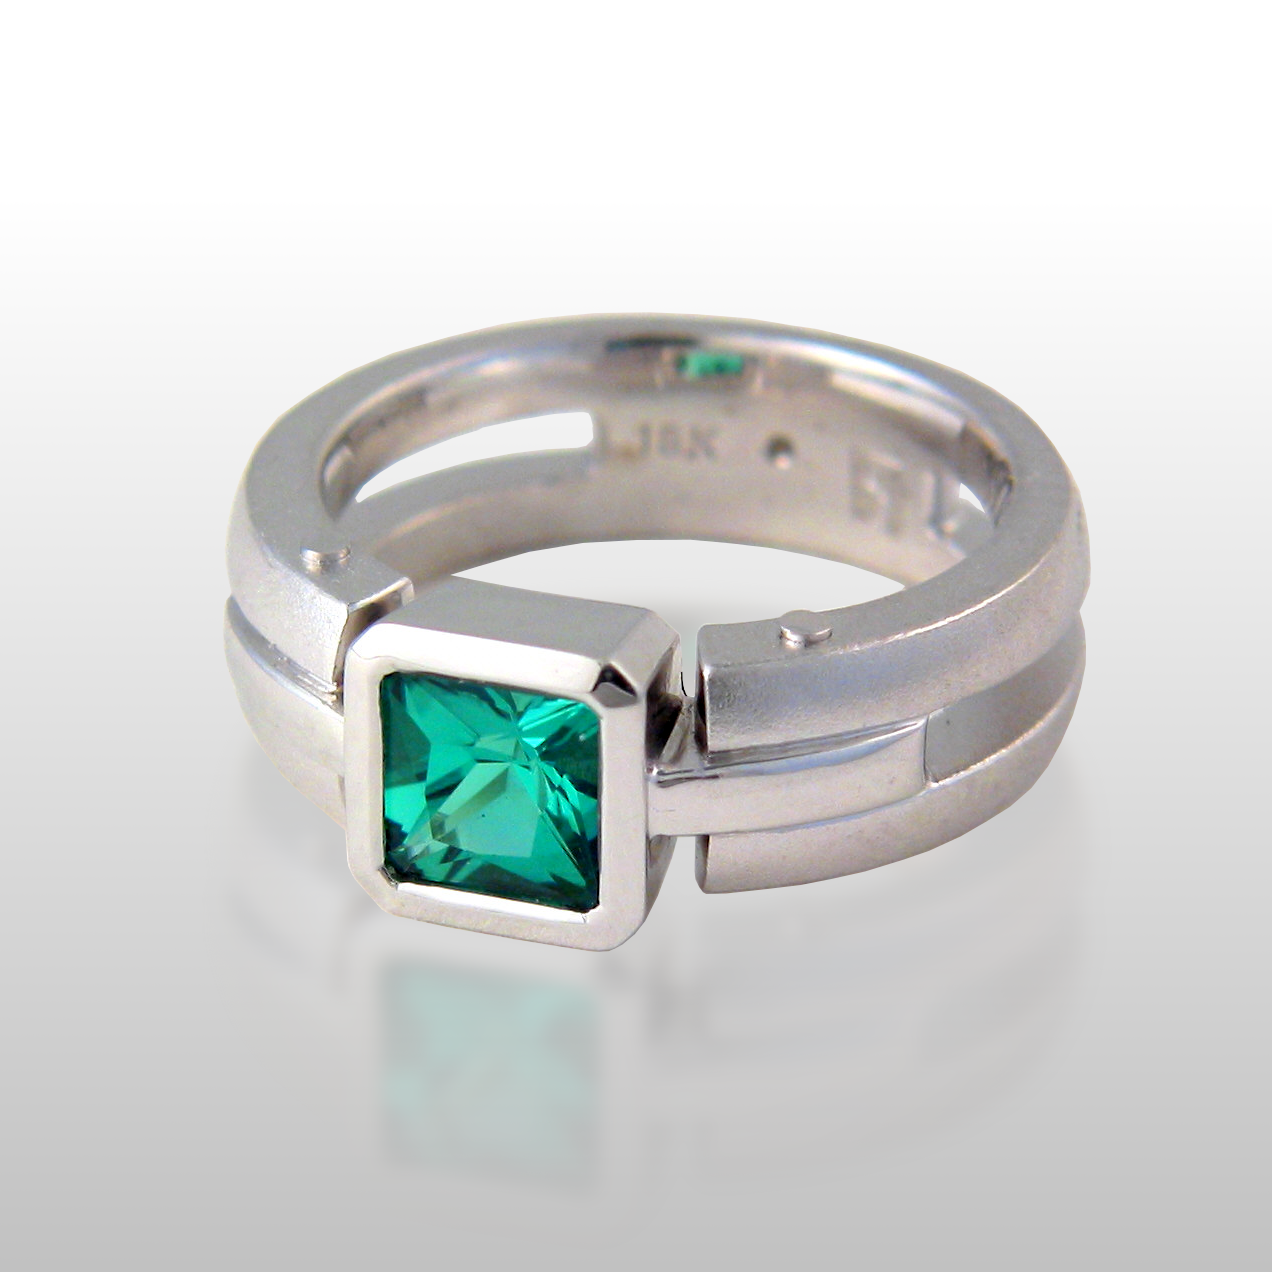 Unique 18k white gold ring 'Millennium' with a green tourmaline and diamond by Pratima Design Fine Art Jewelry